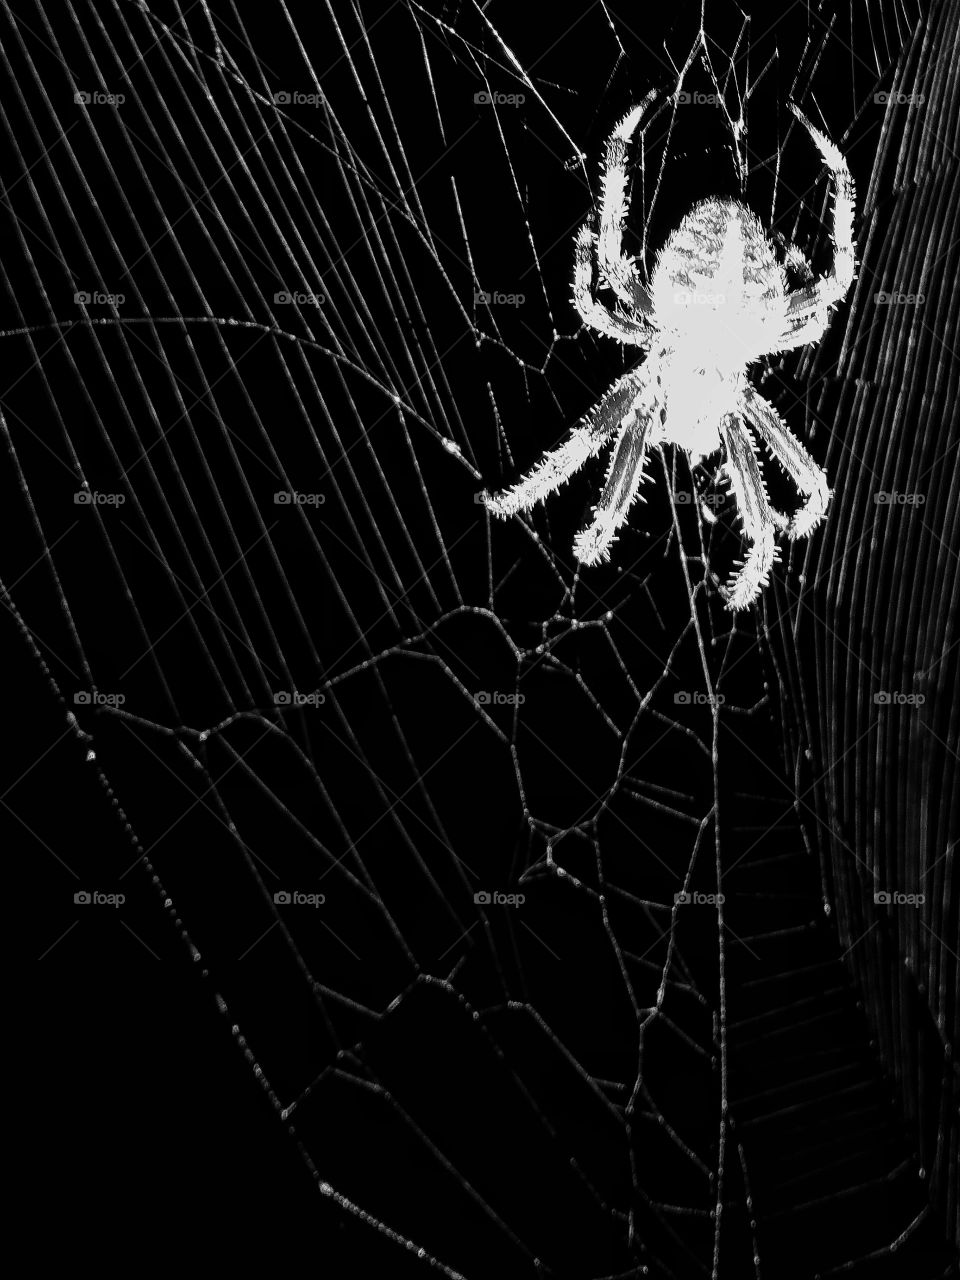 Night Spider. Almost ran into this big guy late last night. I didn't want to tear it down, so I just went through the back door.